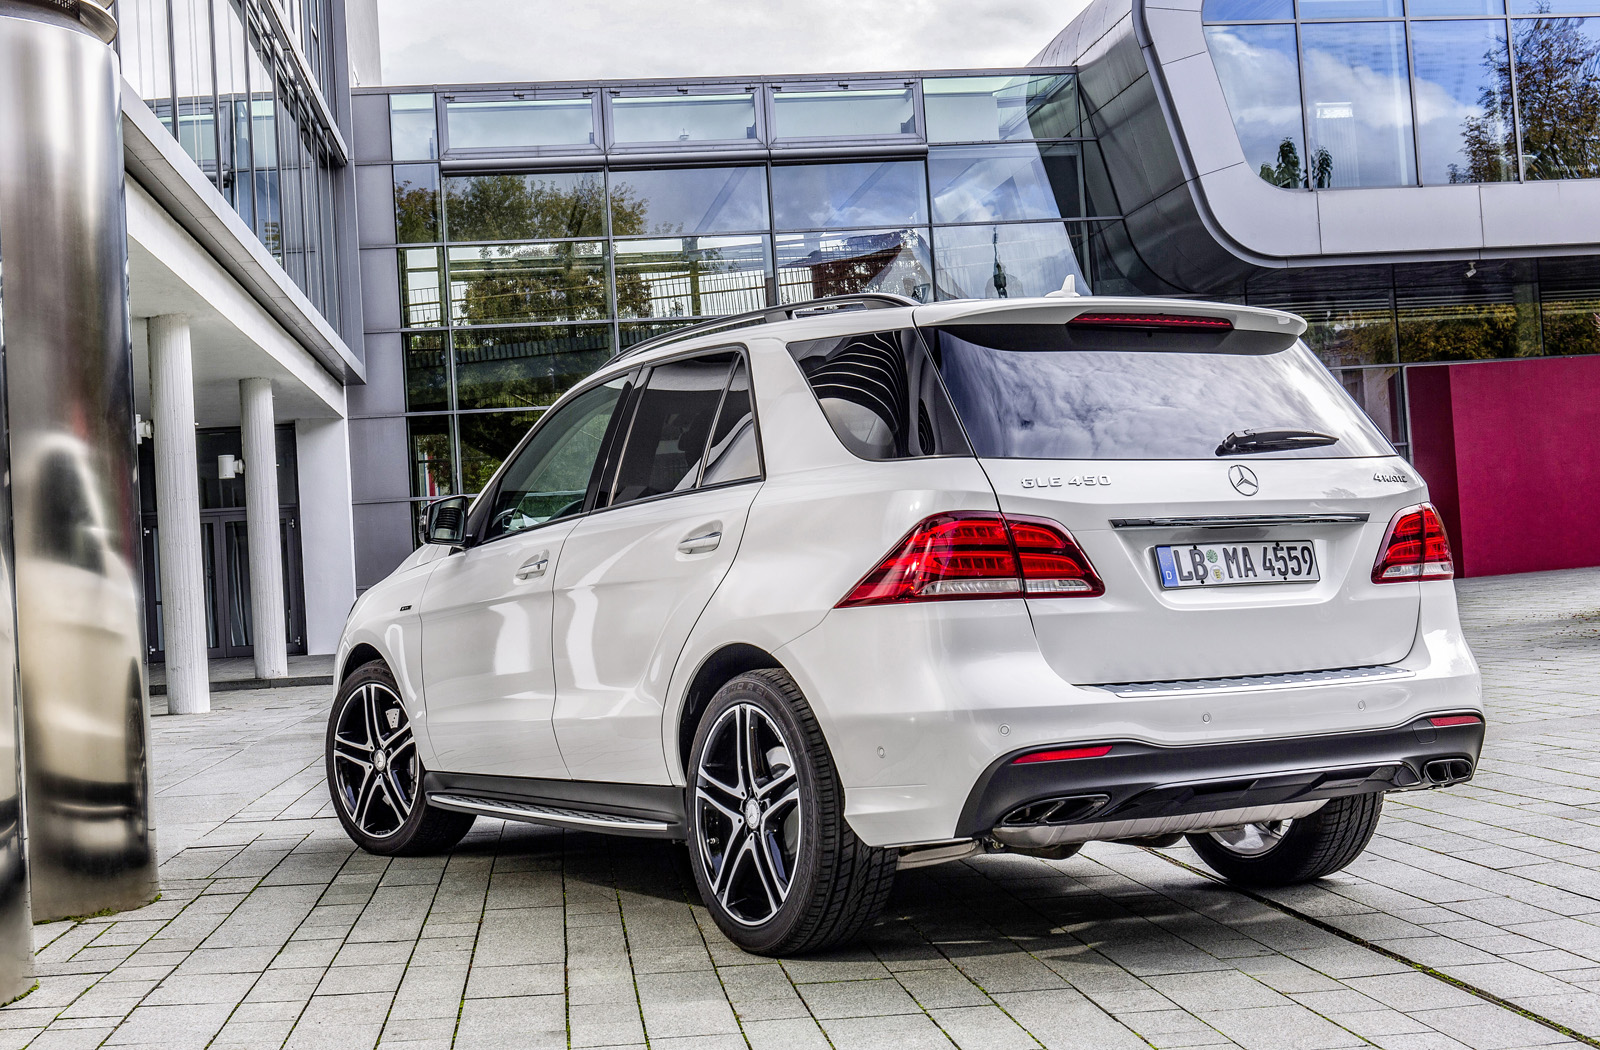 http://www.autoguide.com/blog/wp-content/gallery/2016-mercedes-benz-gle-450-amg-4matic/2016-Mercedes-Benz-GLE-450-AMG-2.jpg